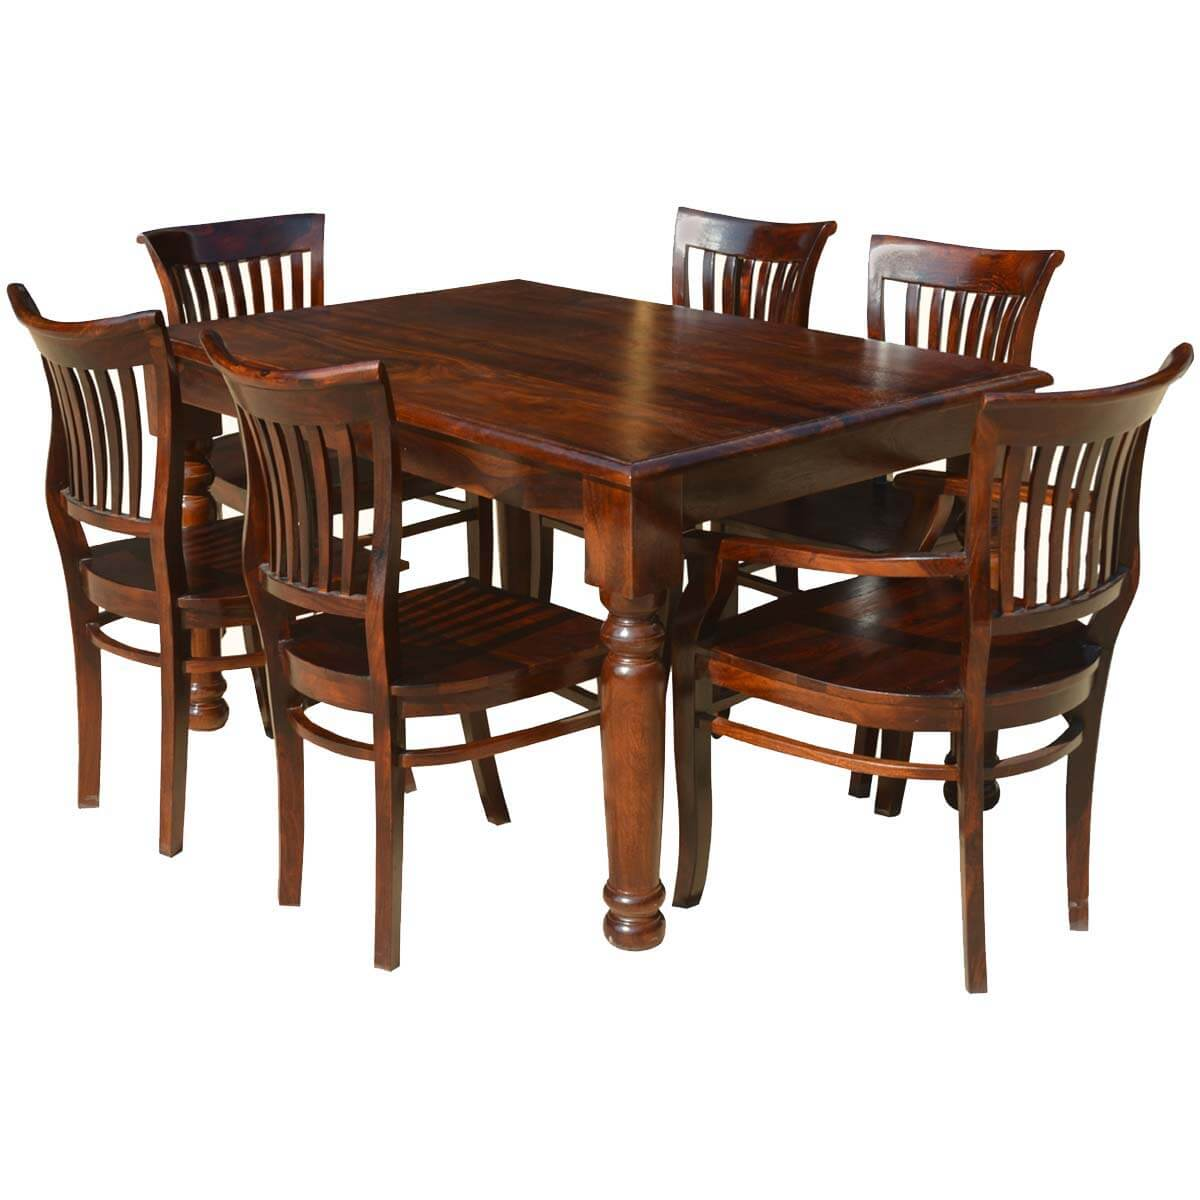 lincoln 7 piece contemporary dining room table and barrel chair set. Black Bedroom Furniture Sets. Home Design Ideas